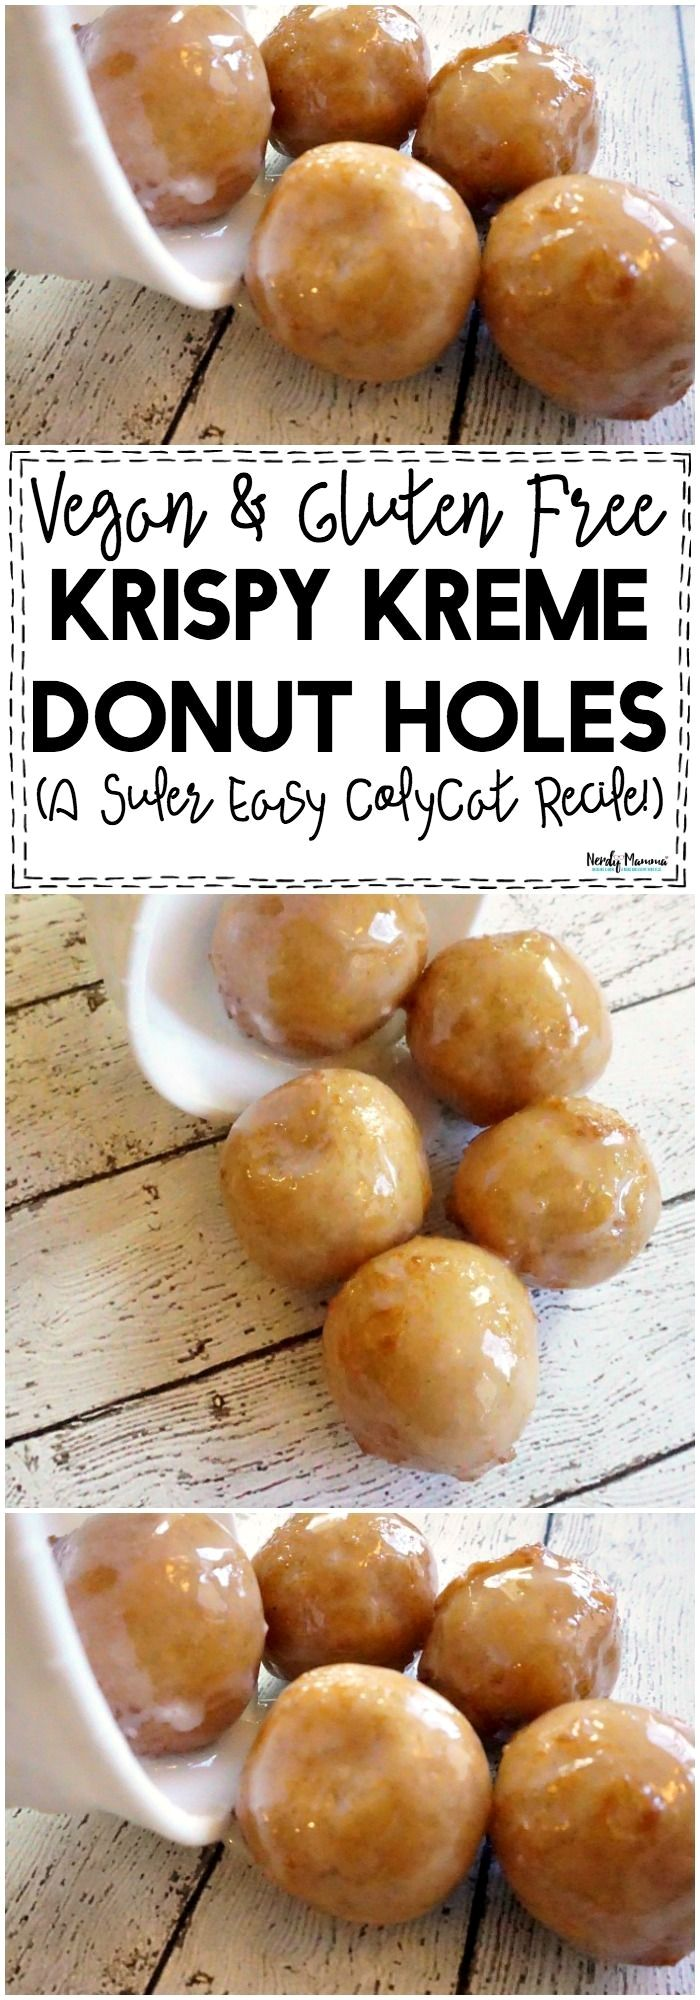 I. LOVE. This recipe for Vegan & Gluten-Free Krispie Kreme Donut Holes! It's like the best copycat ever.